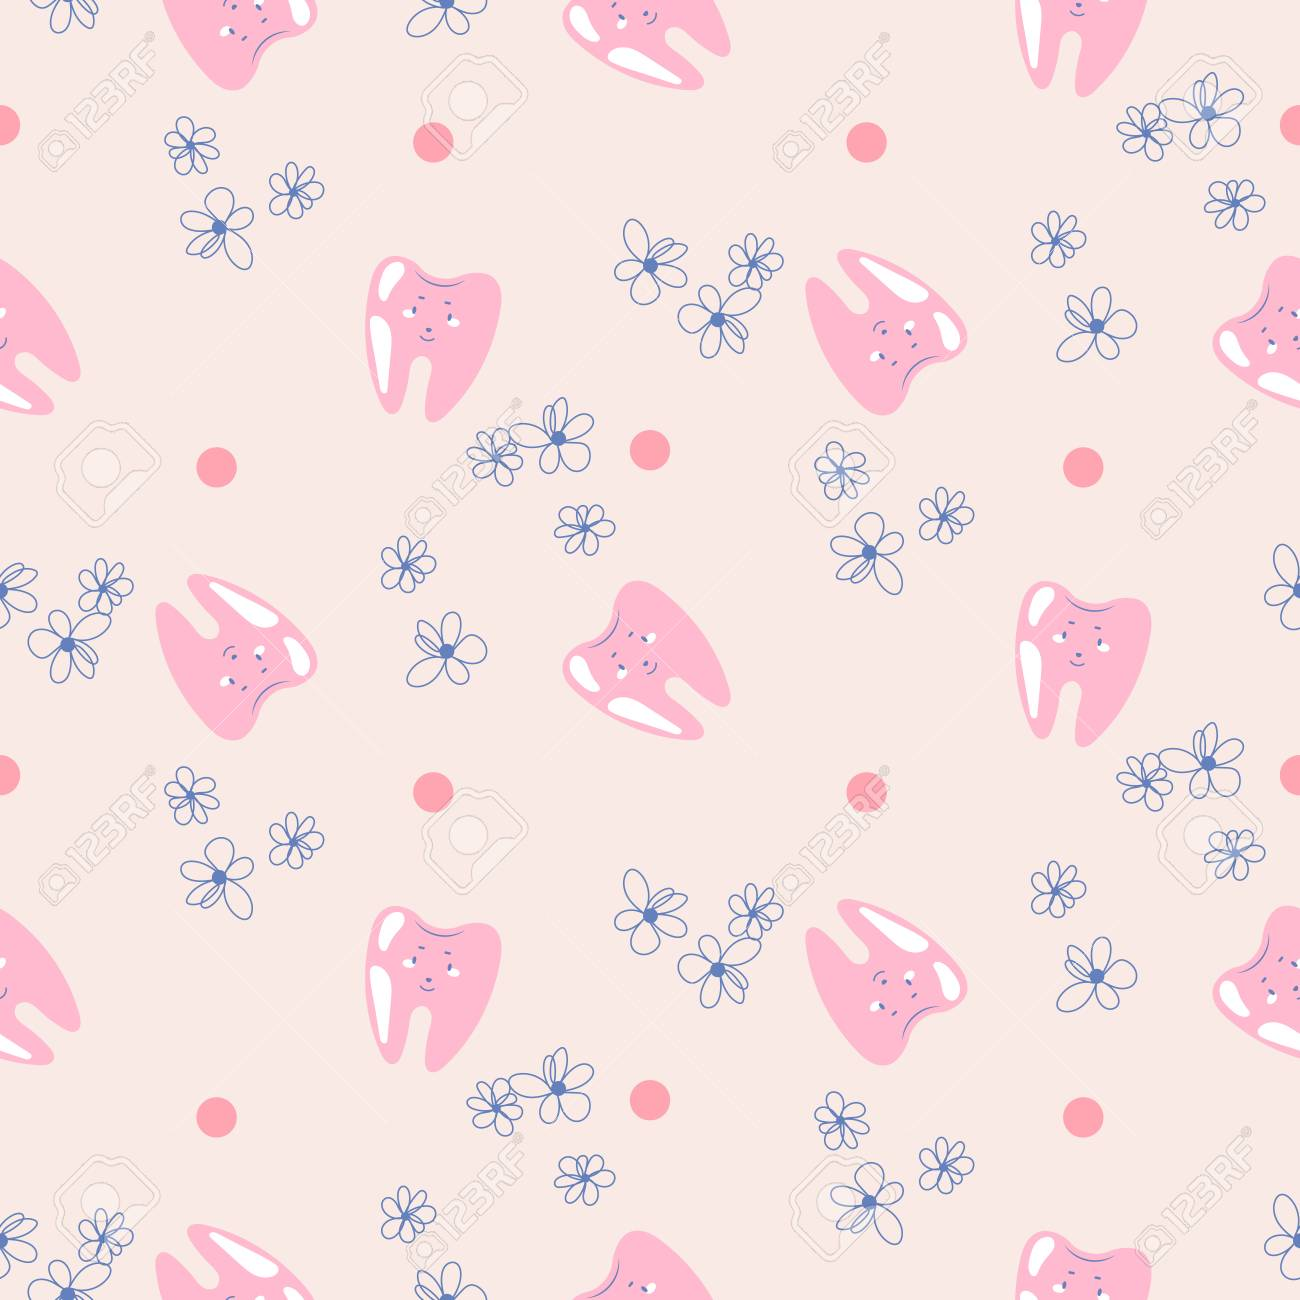 Cute Teeth Baby Dental Pink Pattern Background Seamless Tooth Royalty Free Cliparts Vectors And Stock Illustration Image 114792930